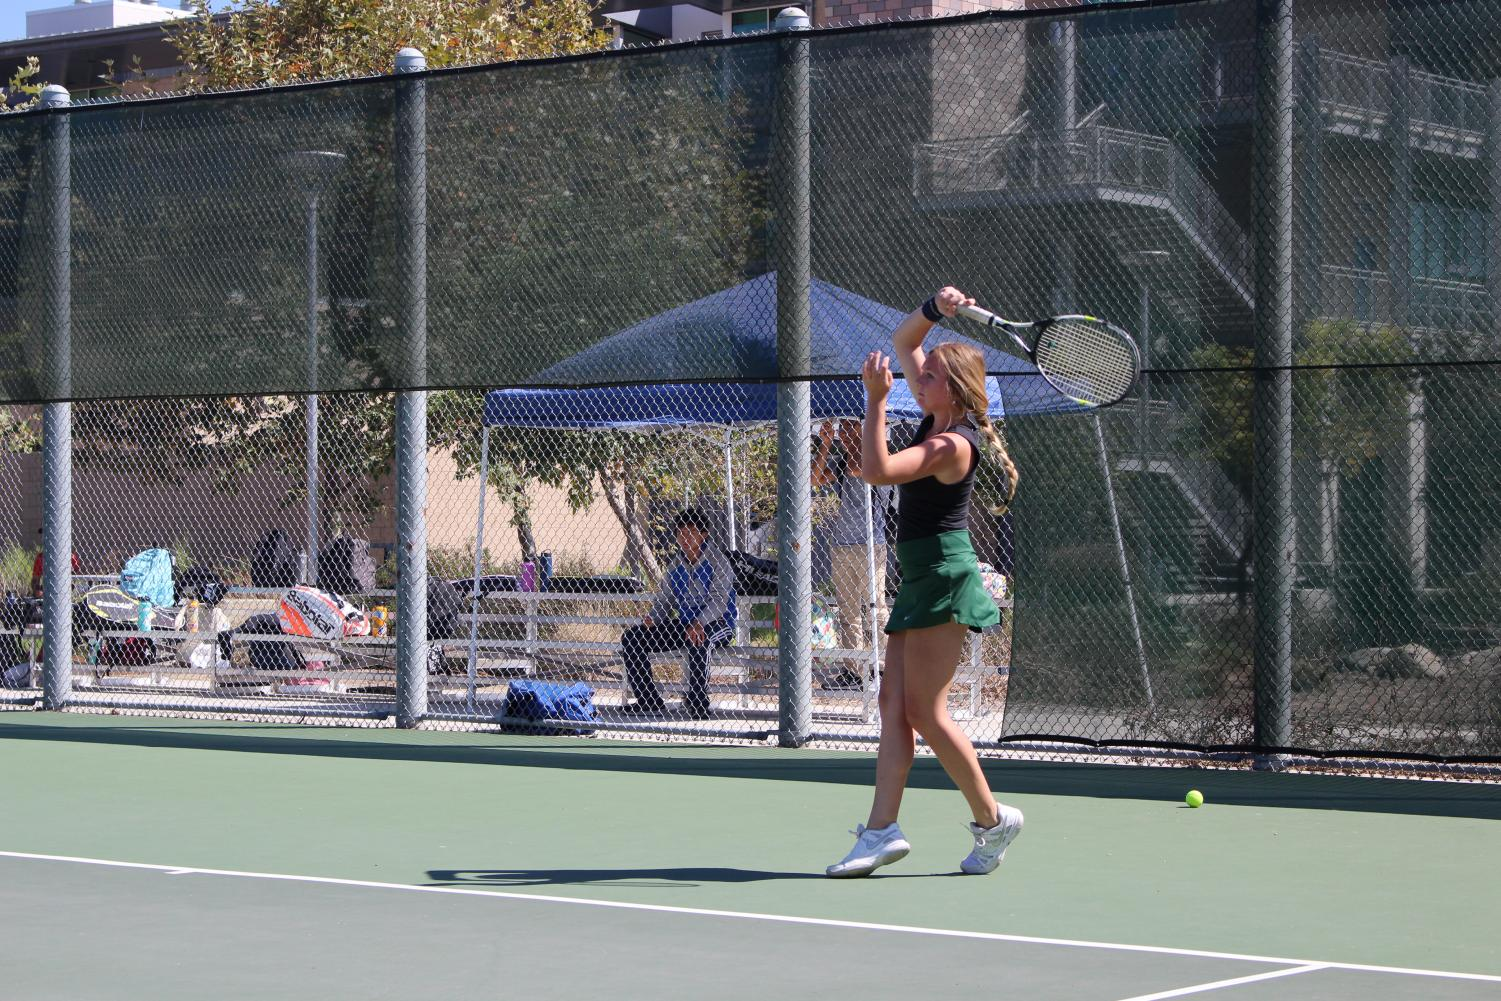 Senior+Lindsey+Williams+swung+her+racket+in+warm-ups+when+getting+ready+for+the+game+against+Fallbrook+last+Tuesday.+The+lady+Bobcats+took+the+win+with+a+score+of+15-3.